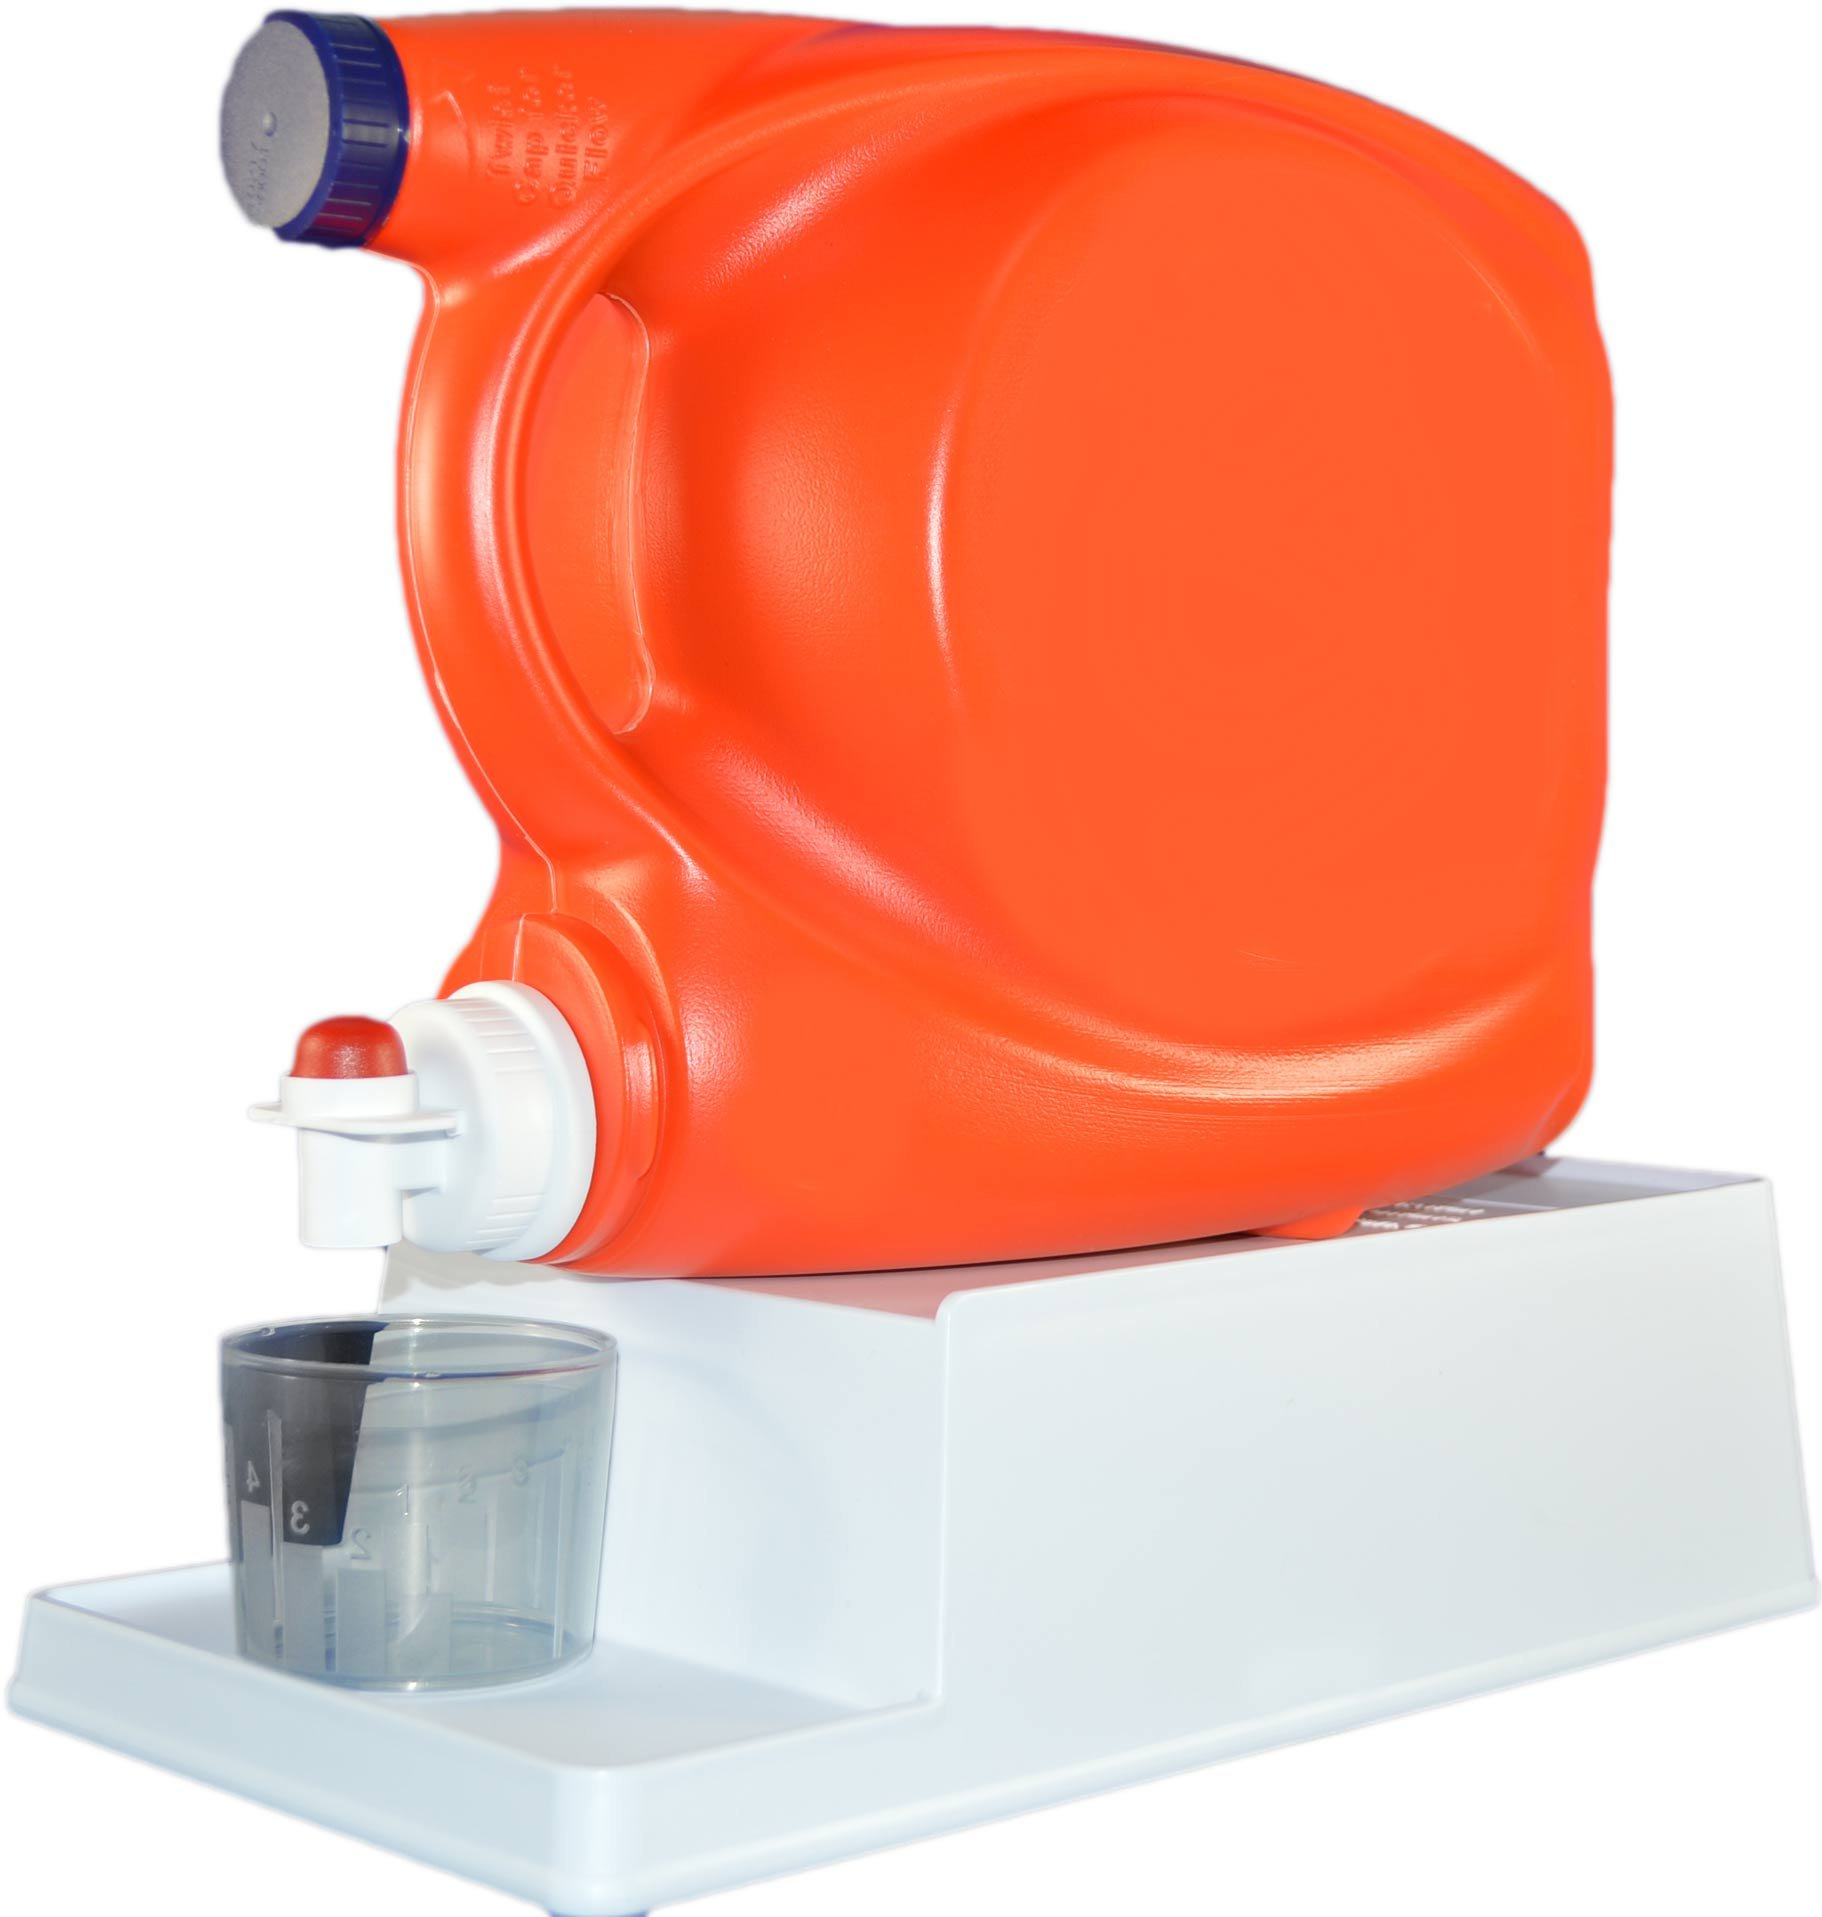 Laundry Soap Station by Simply Convenient Solutions